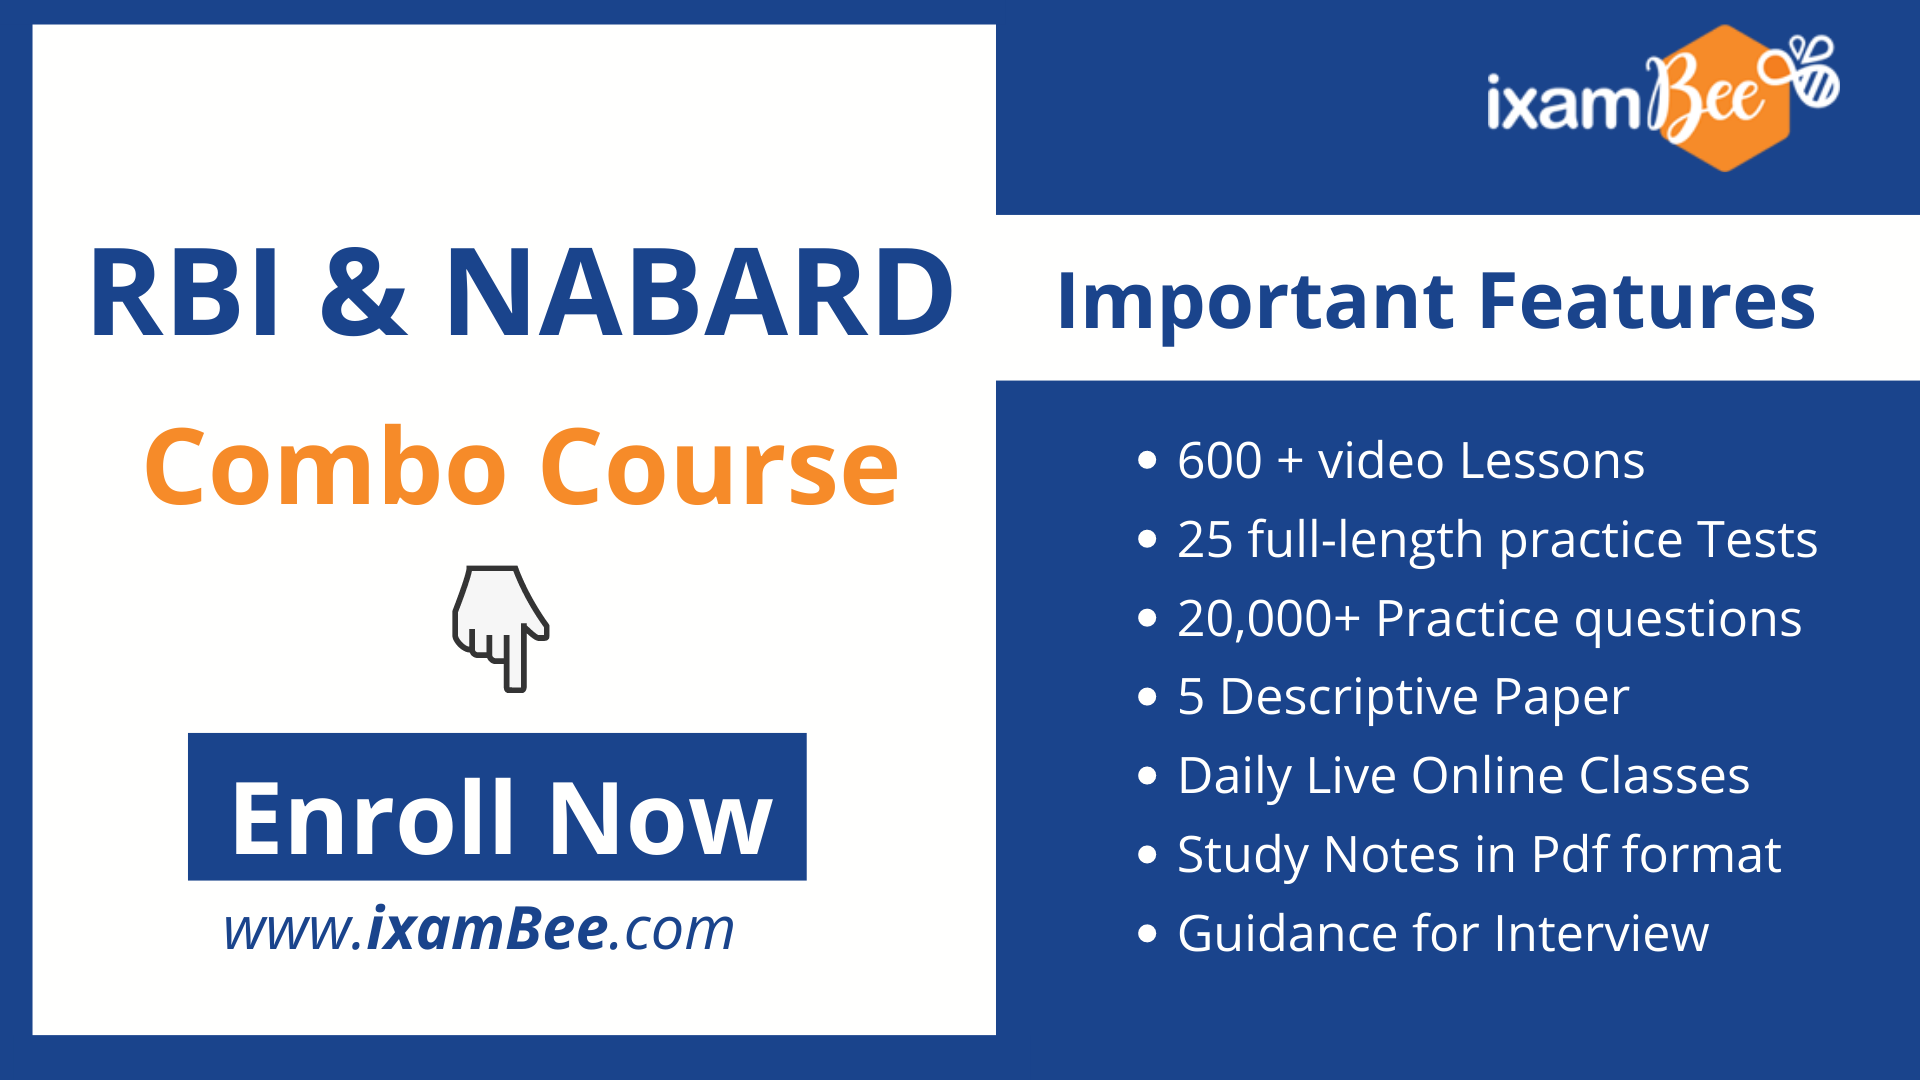 rbi nabard combo course